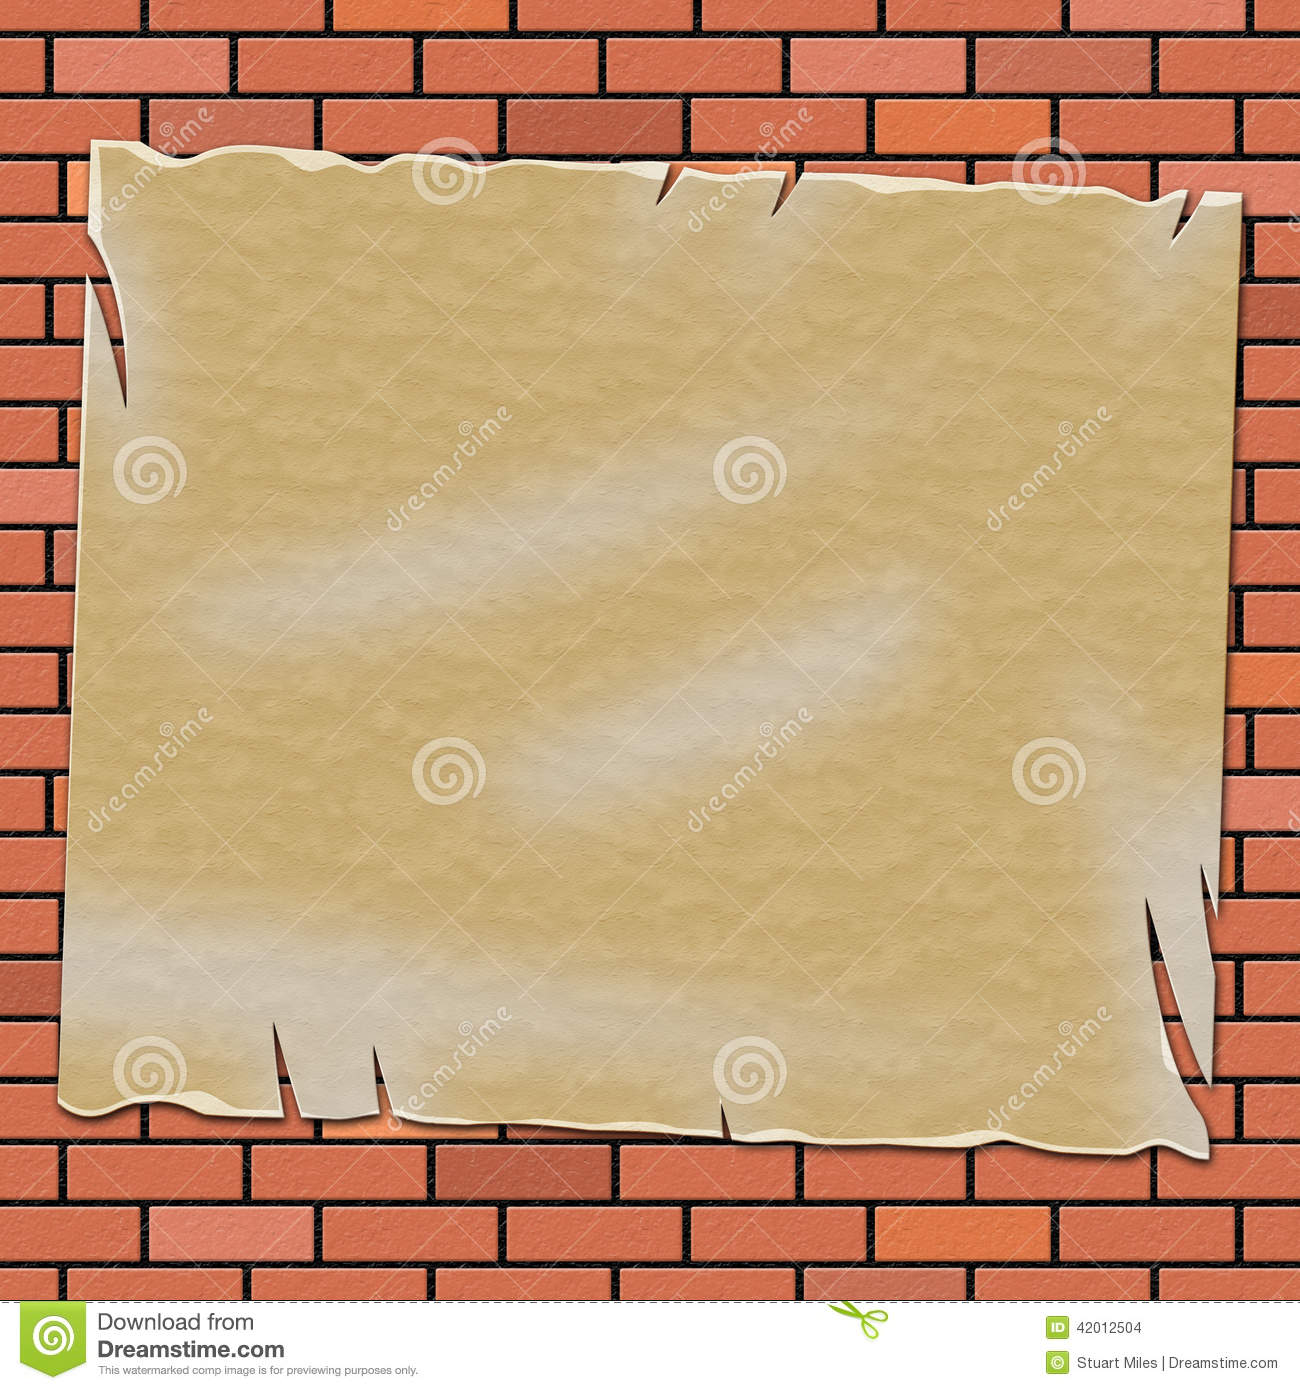 Brick Wall Means Empty Space And Backdrop Stock Illustration ...